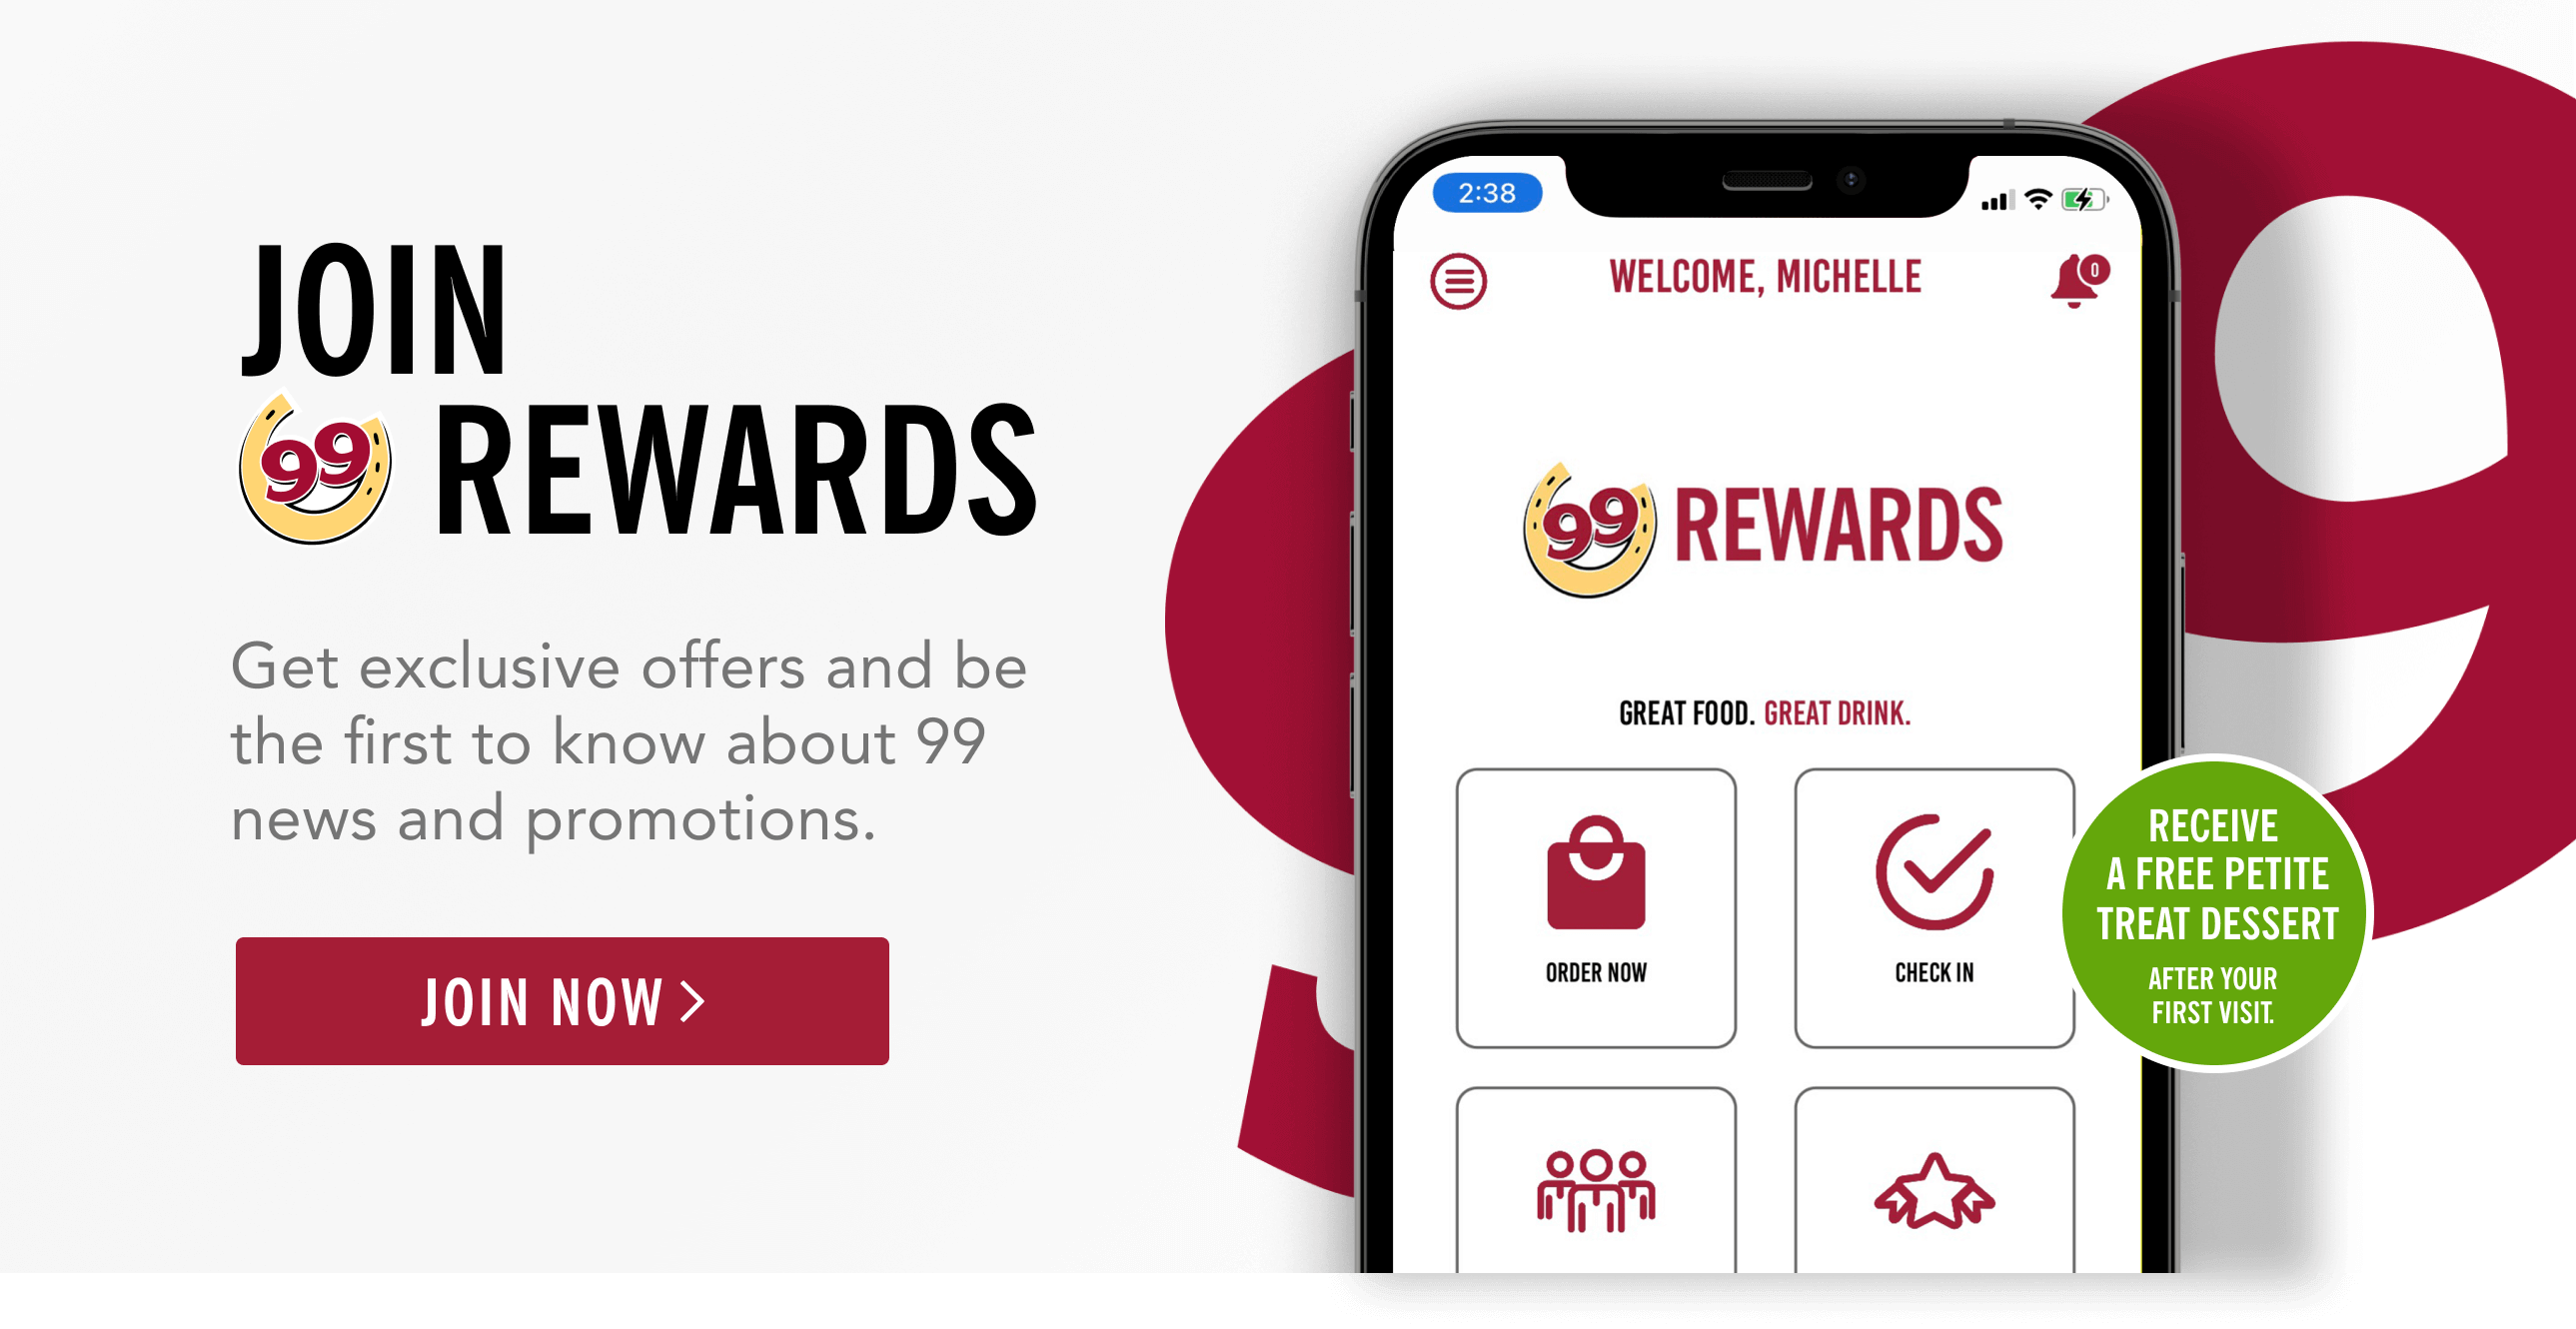 Join 99 Rewards